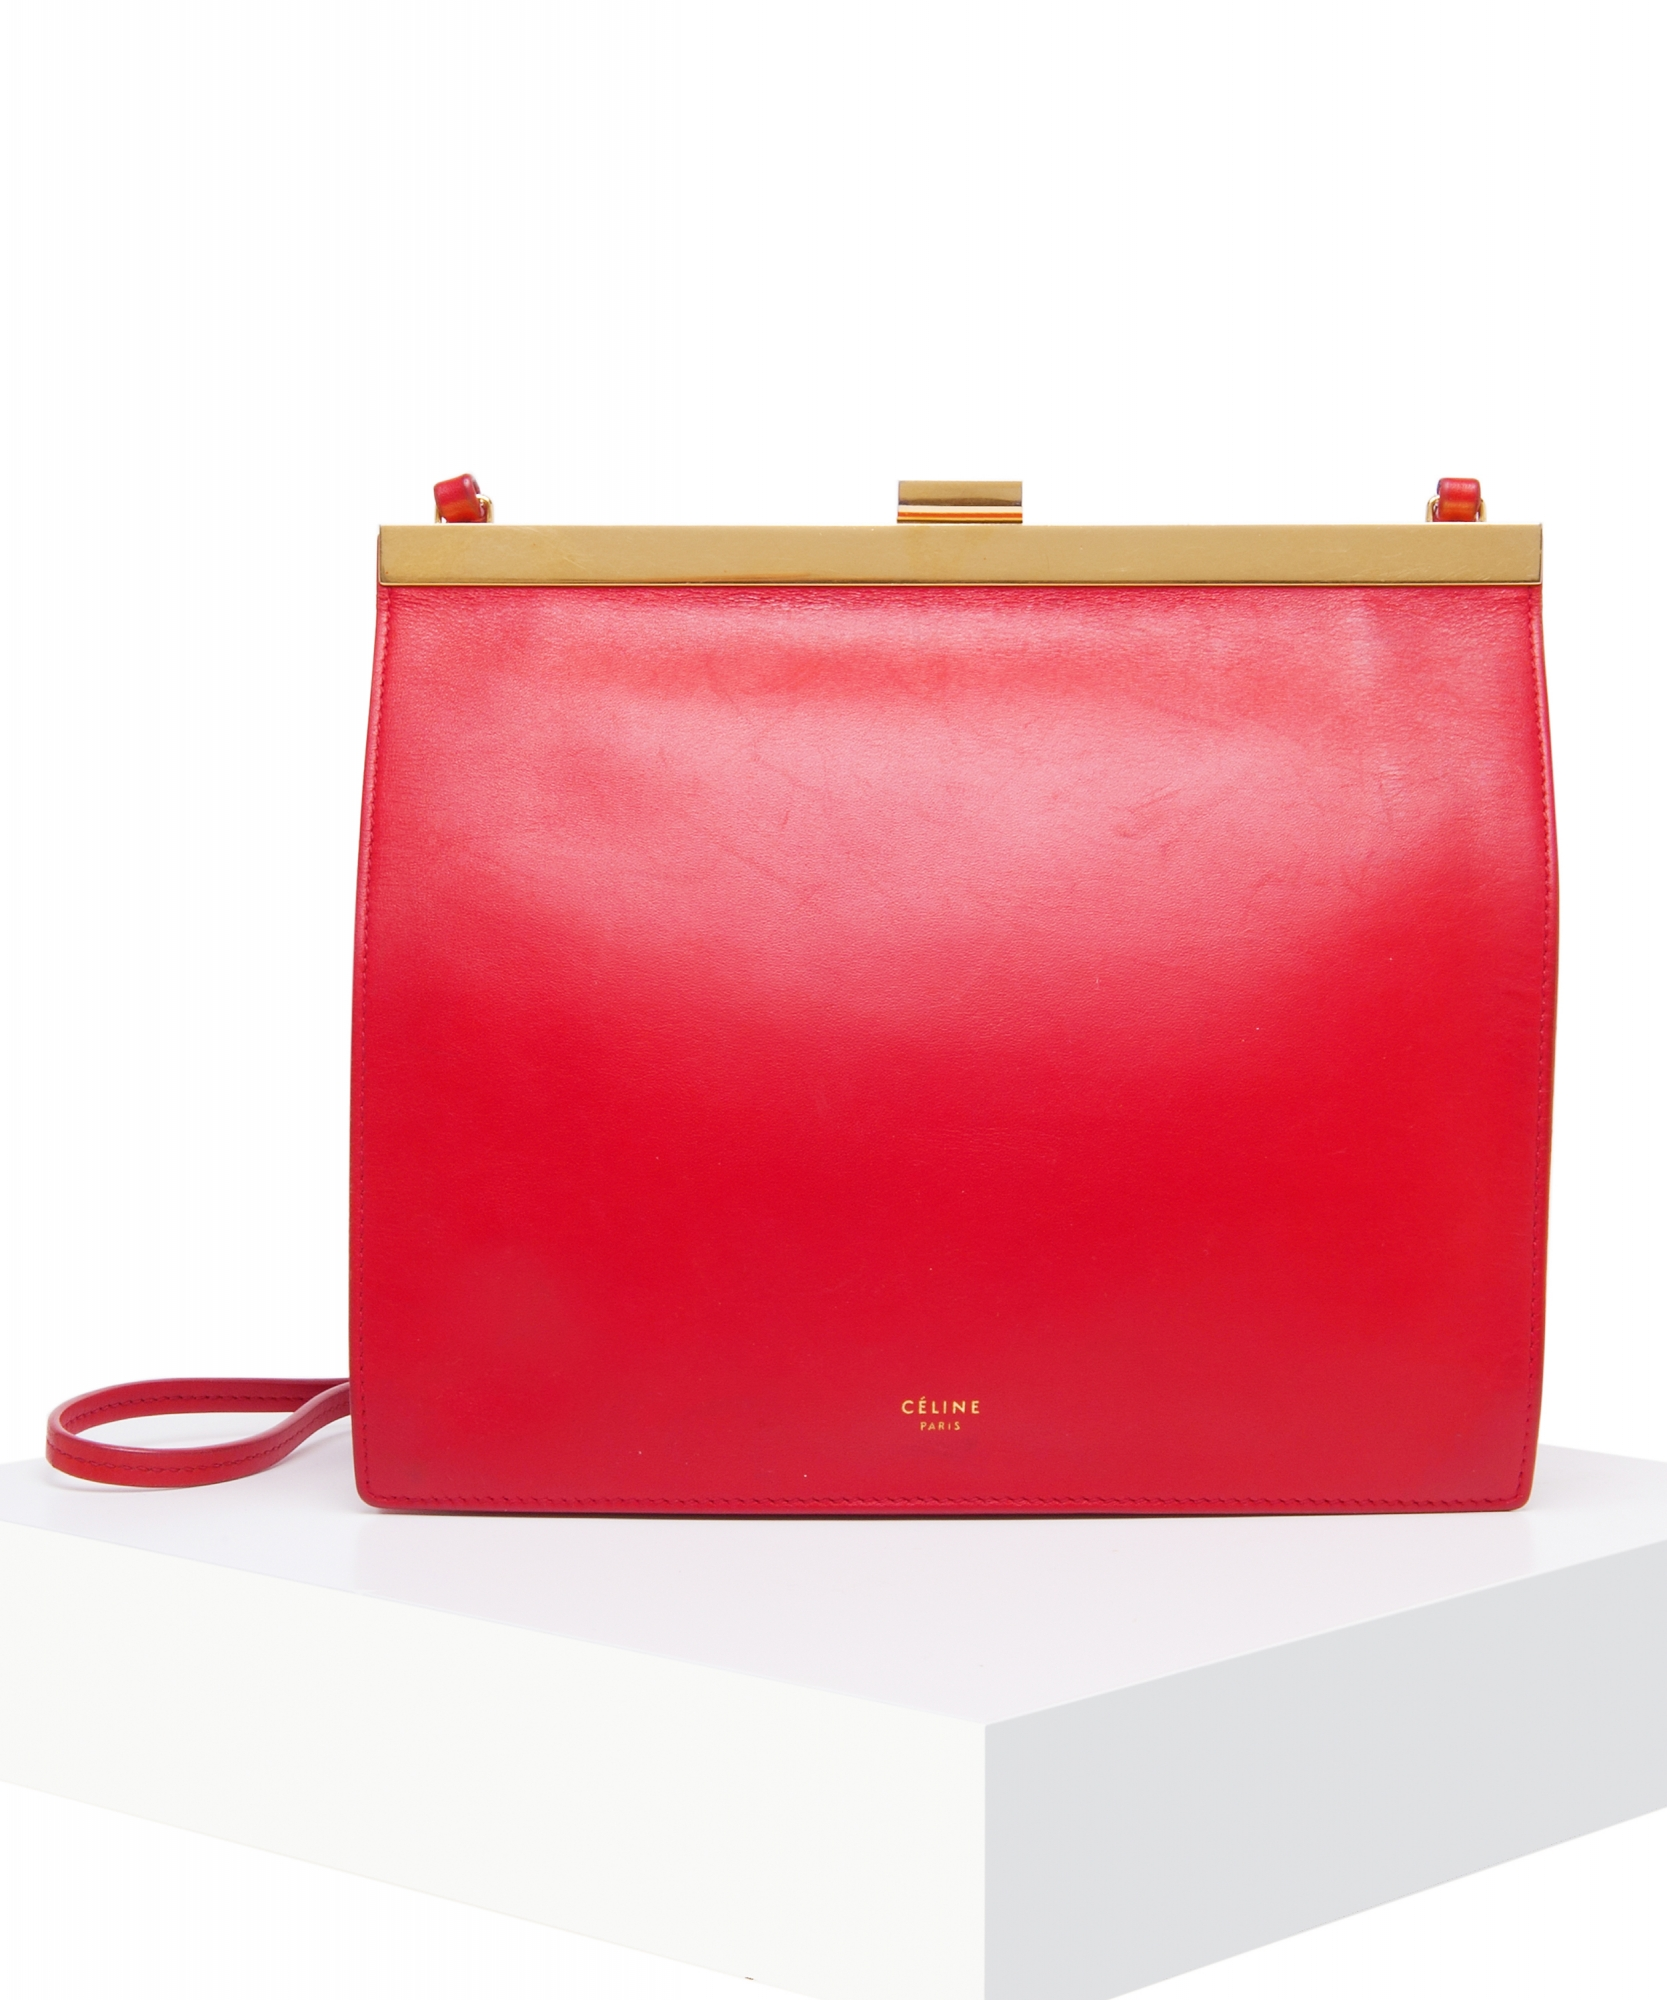 f6220b2b14 Céline Mini Clasp Crossbody Bag